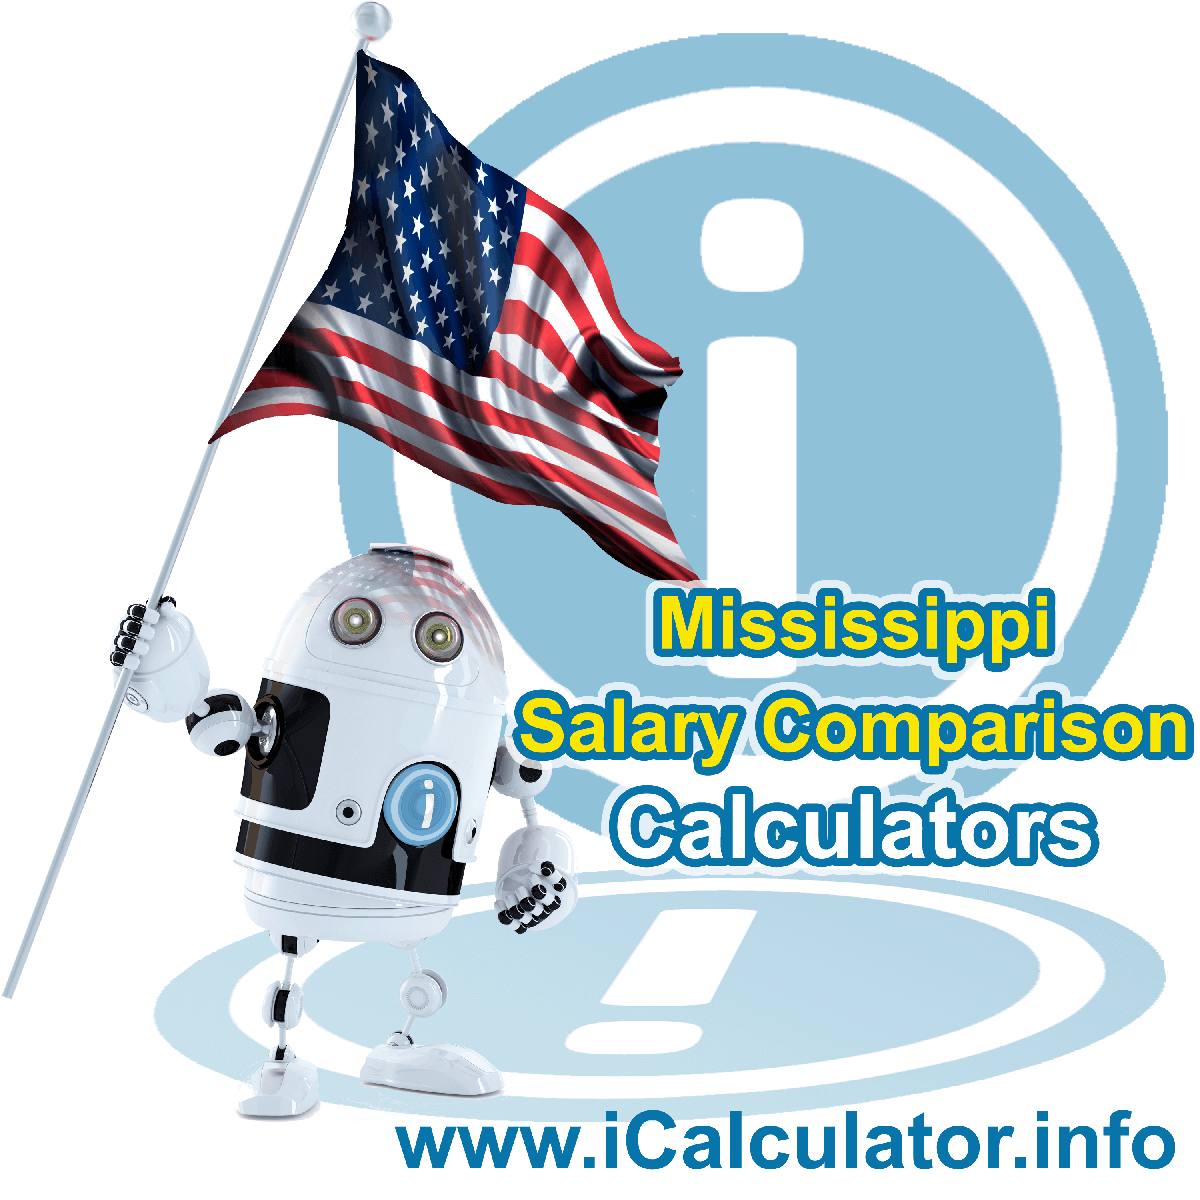 Mississippi Salary Comparison Calculator 2020 | iCalculator | The Mississippi Salary Comparison Calculator allows you to quickly calculate and compare upto 6 salaries in Mississippi or between other states for the 2020 tax year and historical tax years. Its an excellent tool for jobseekers, pay raise comparison and comparison of salaries between different US States